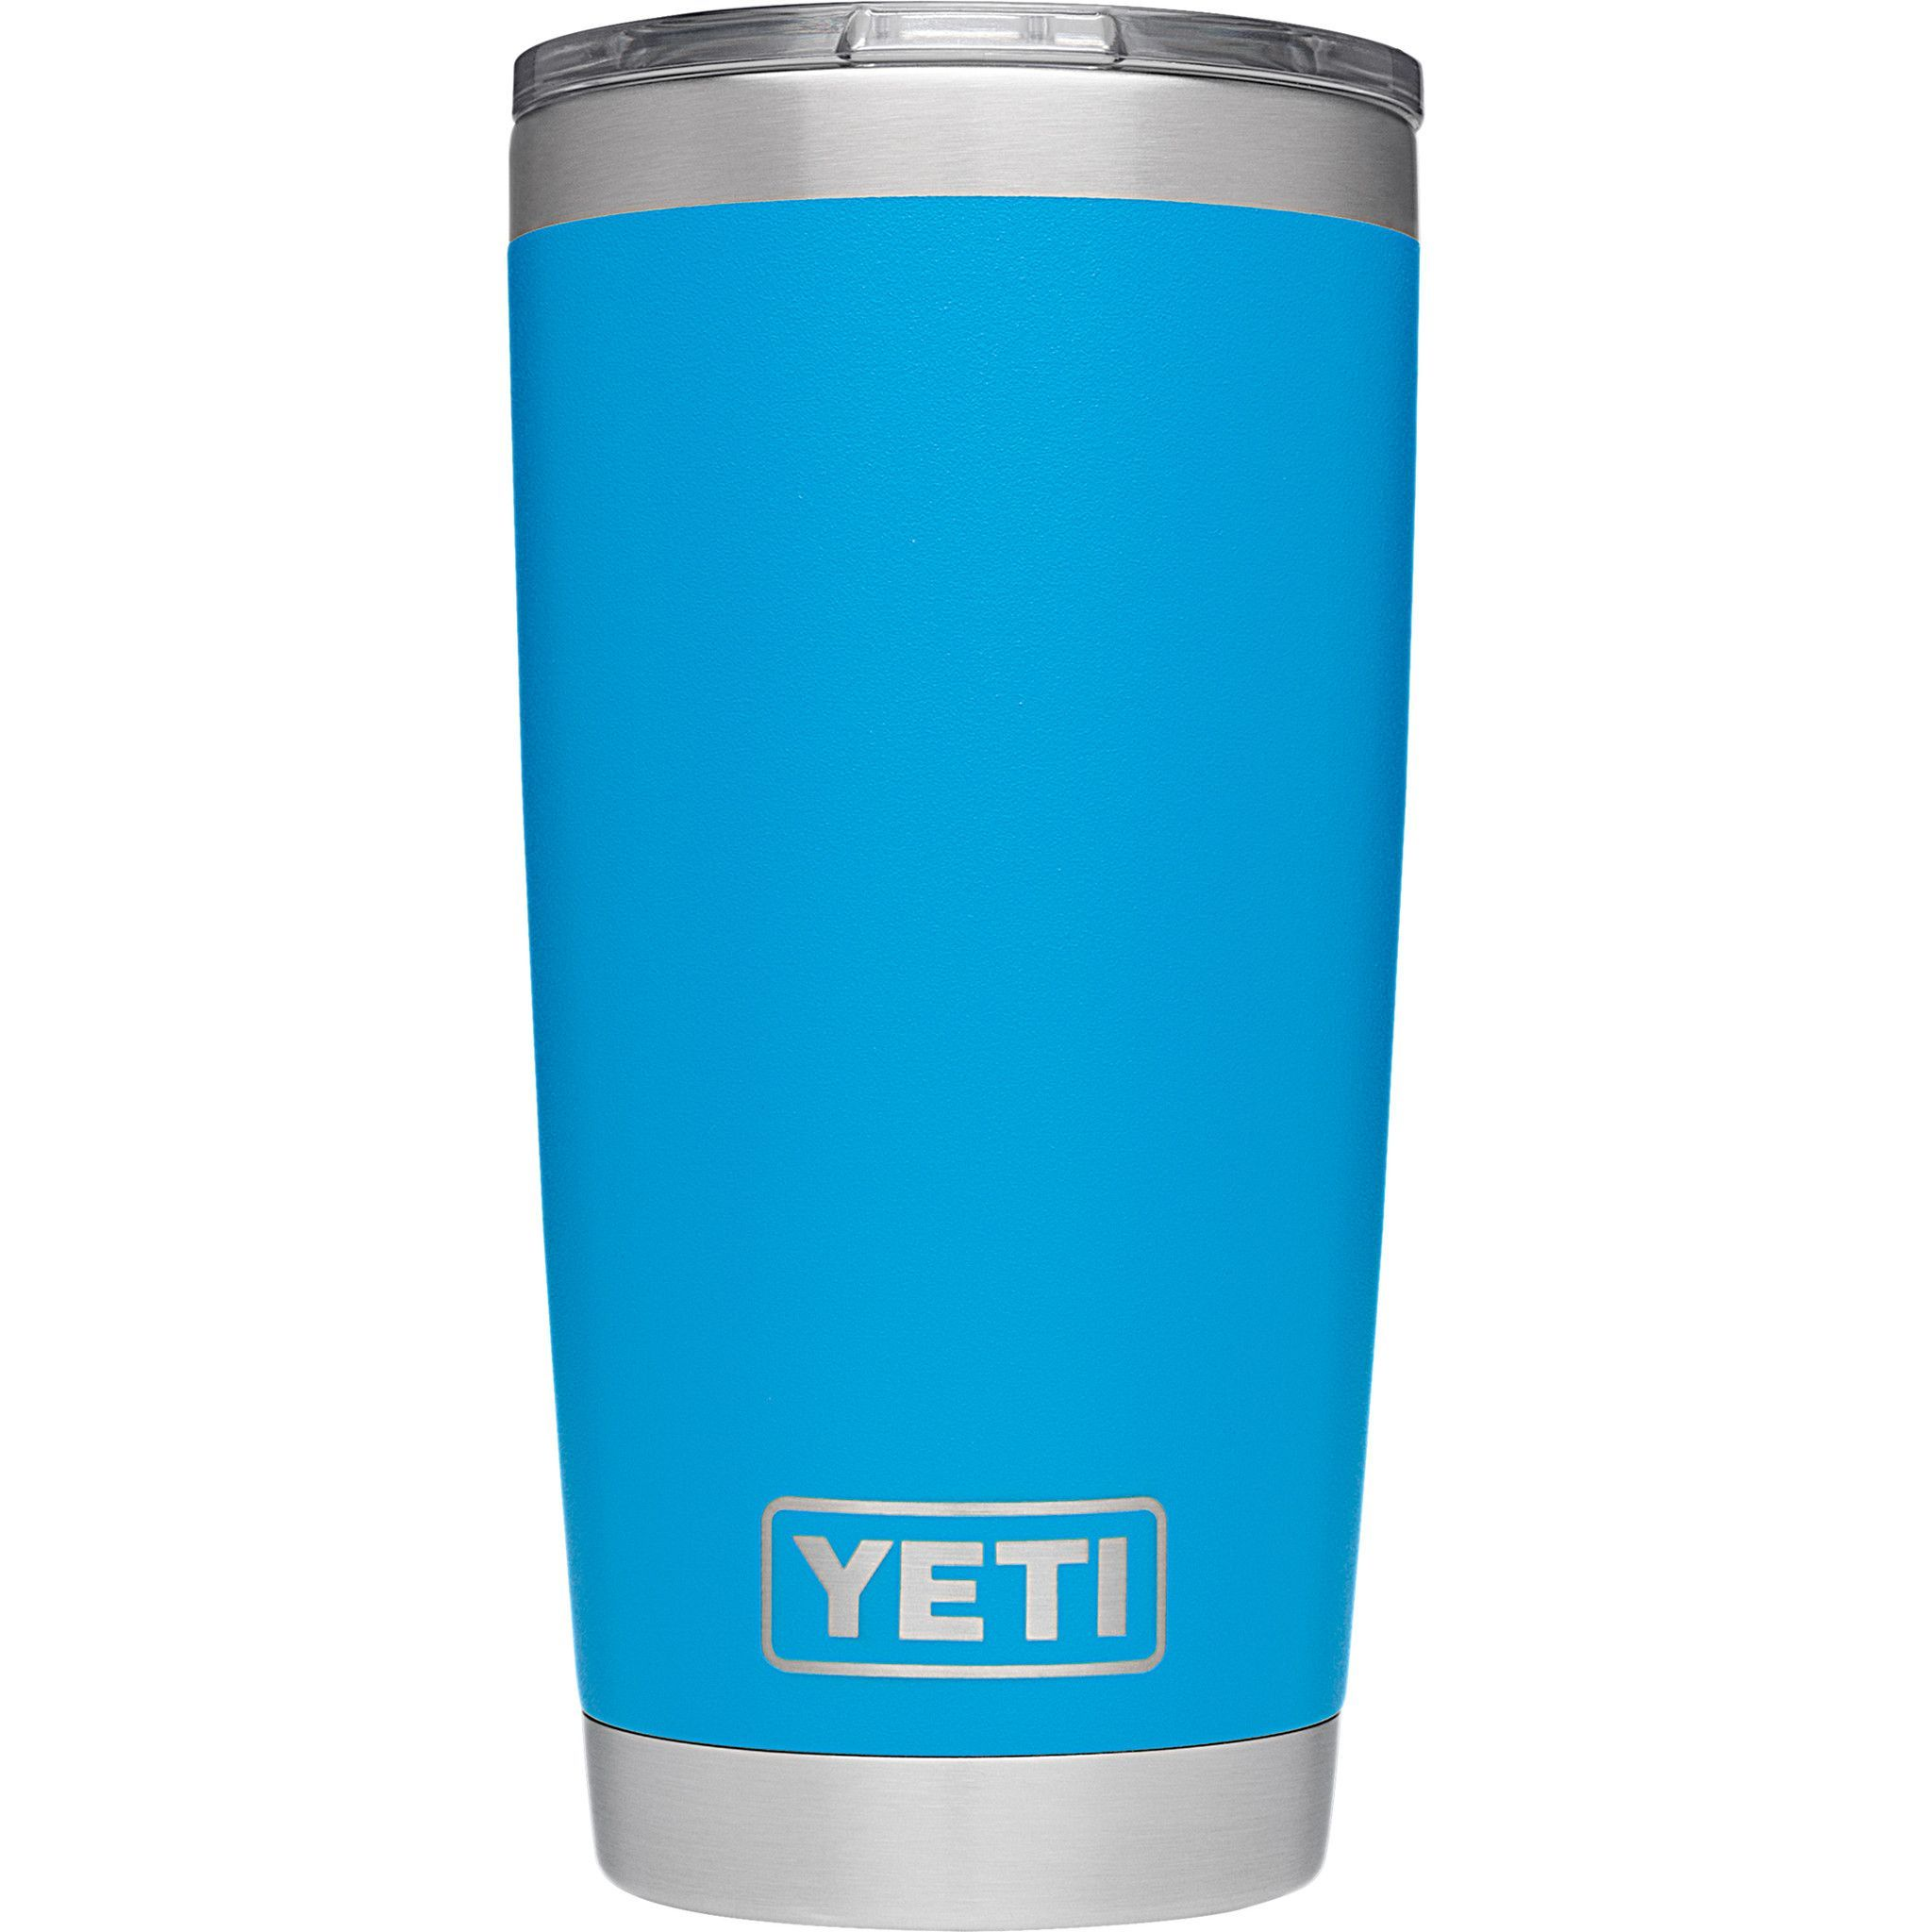 YETI Rambler 20 oz Tumbler Stainless Steel ALL Colors